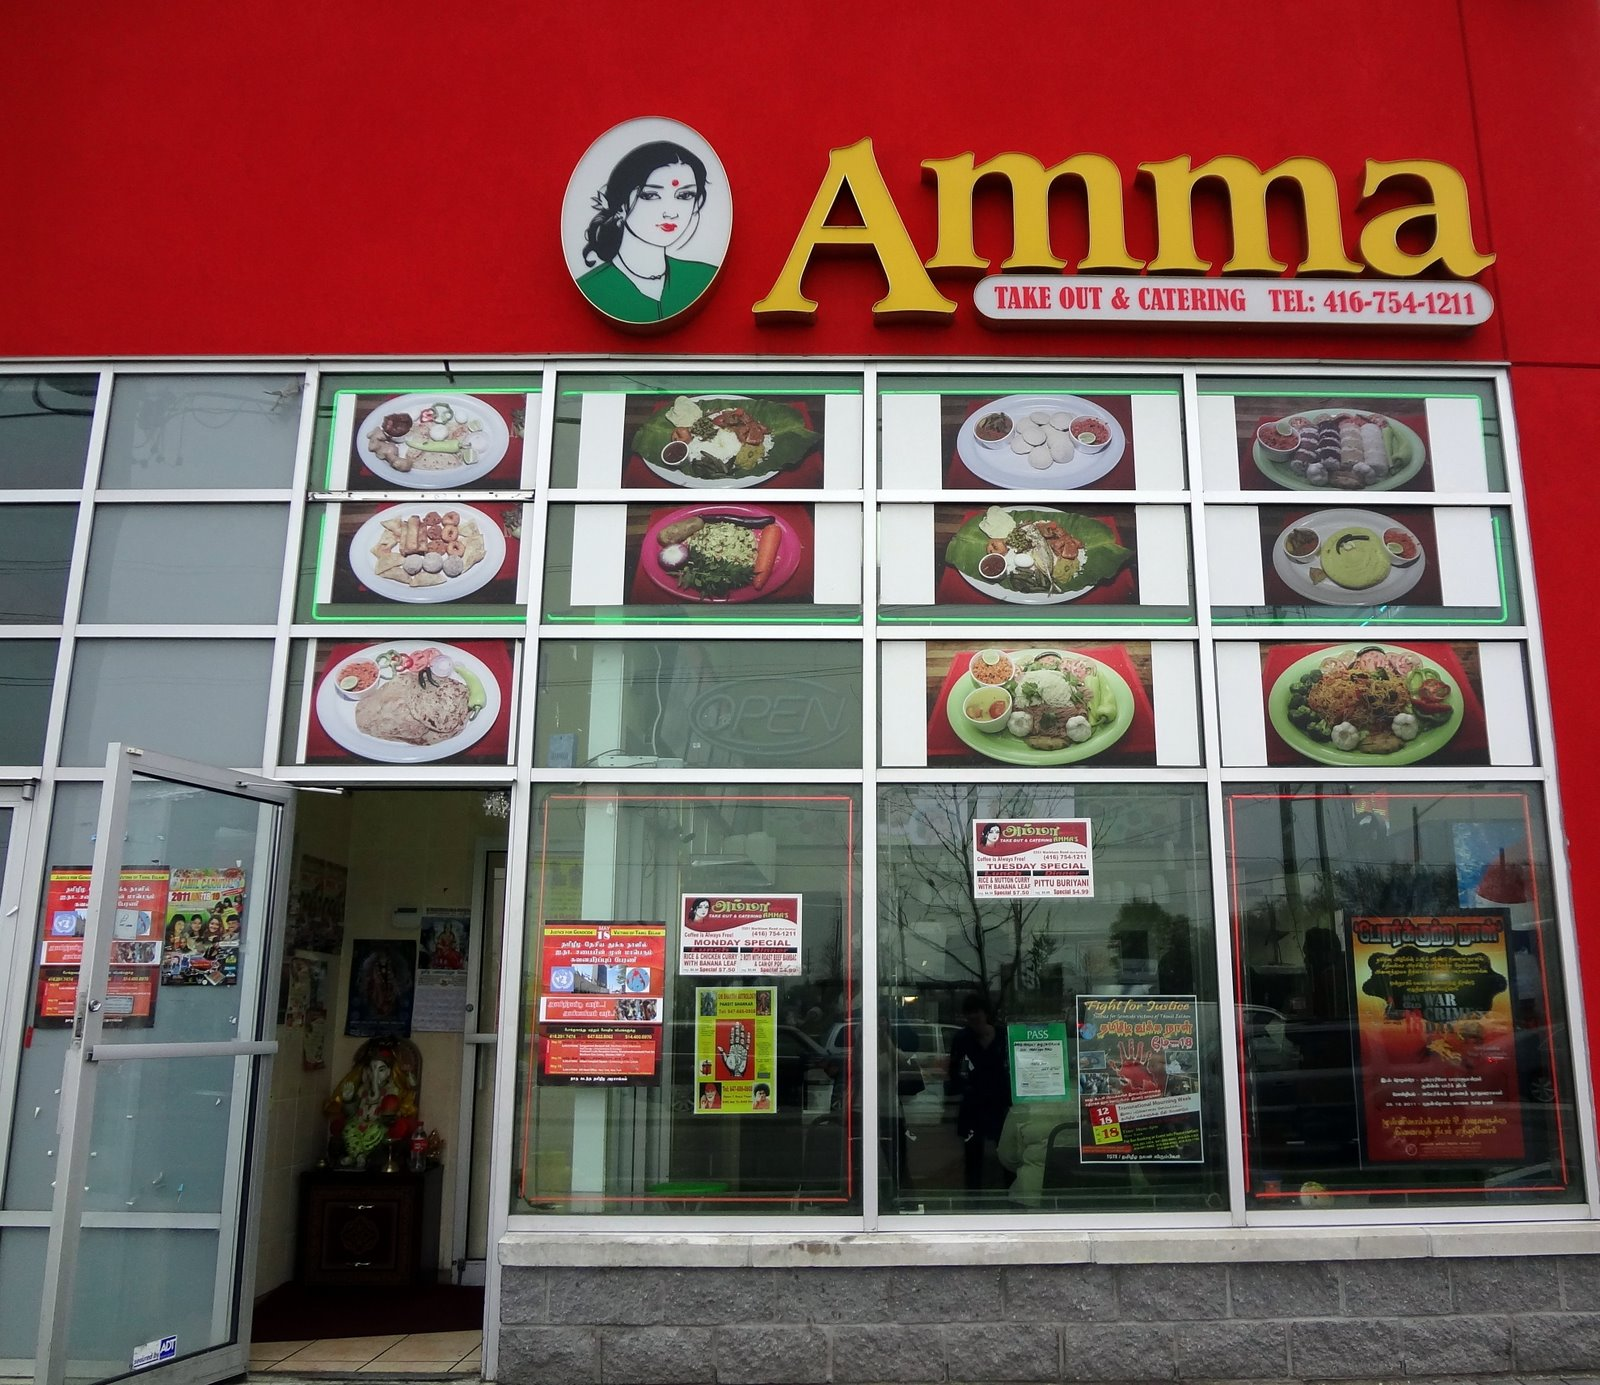 The Tamil Strip Mall Get Six Amazing Dishes Served On A Banana Leaf For 6